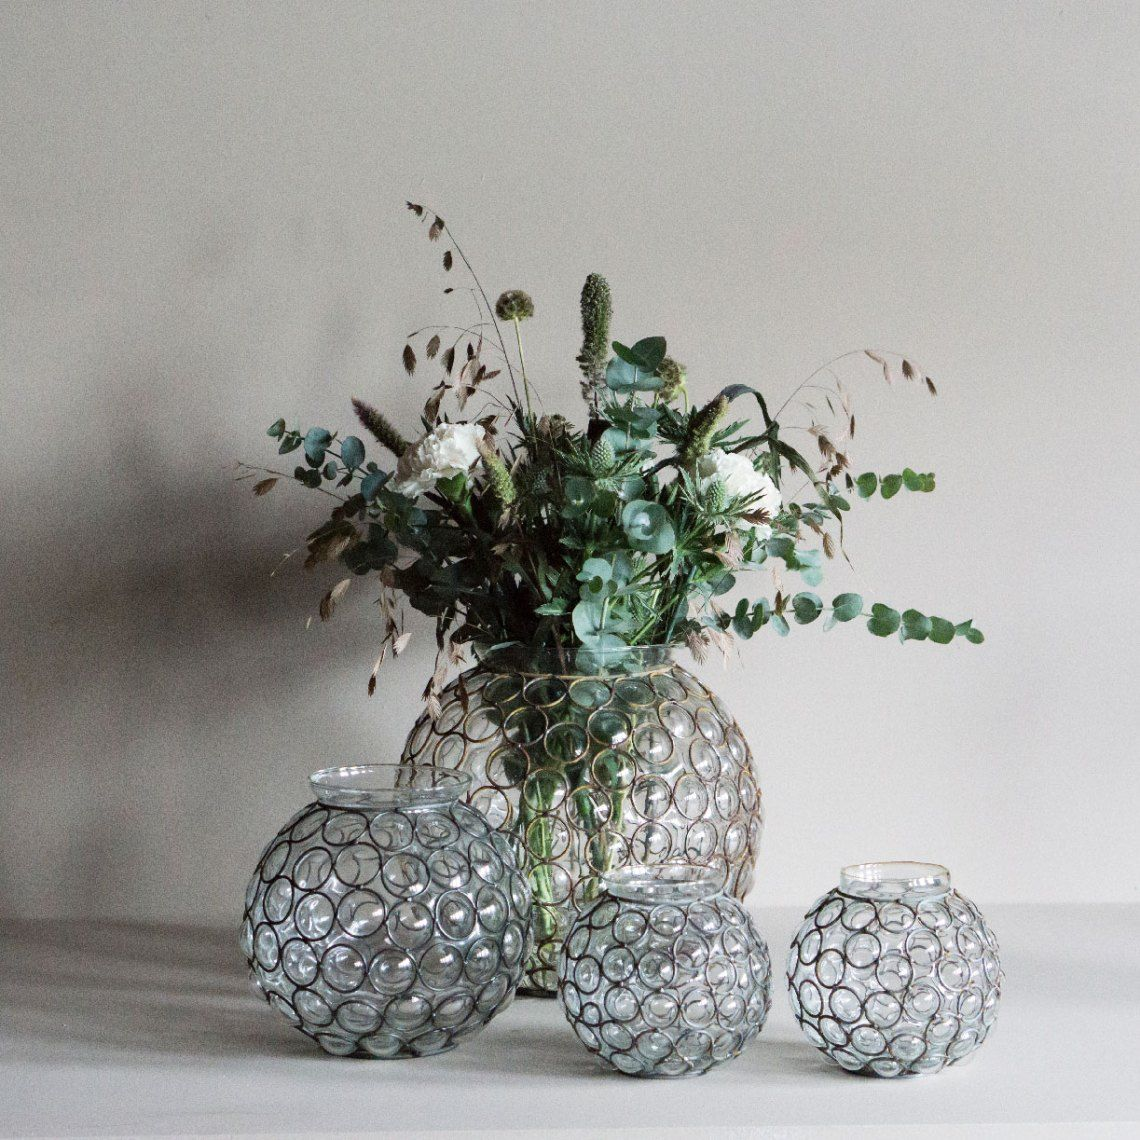 New From DBKD - COCO LAPINE DESIGN